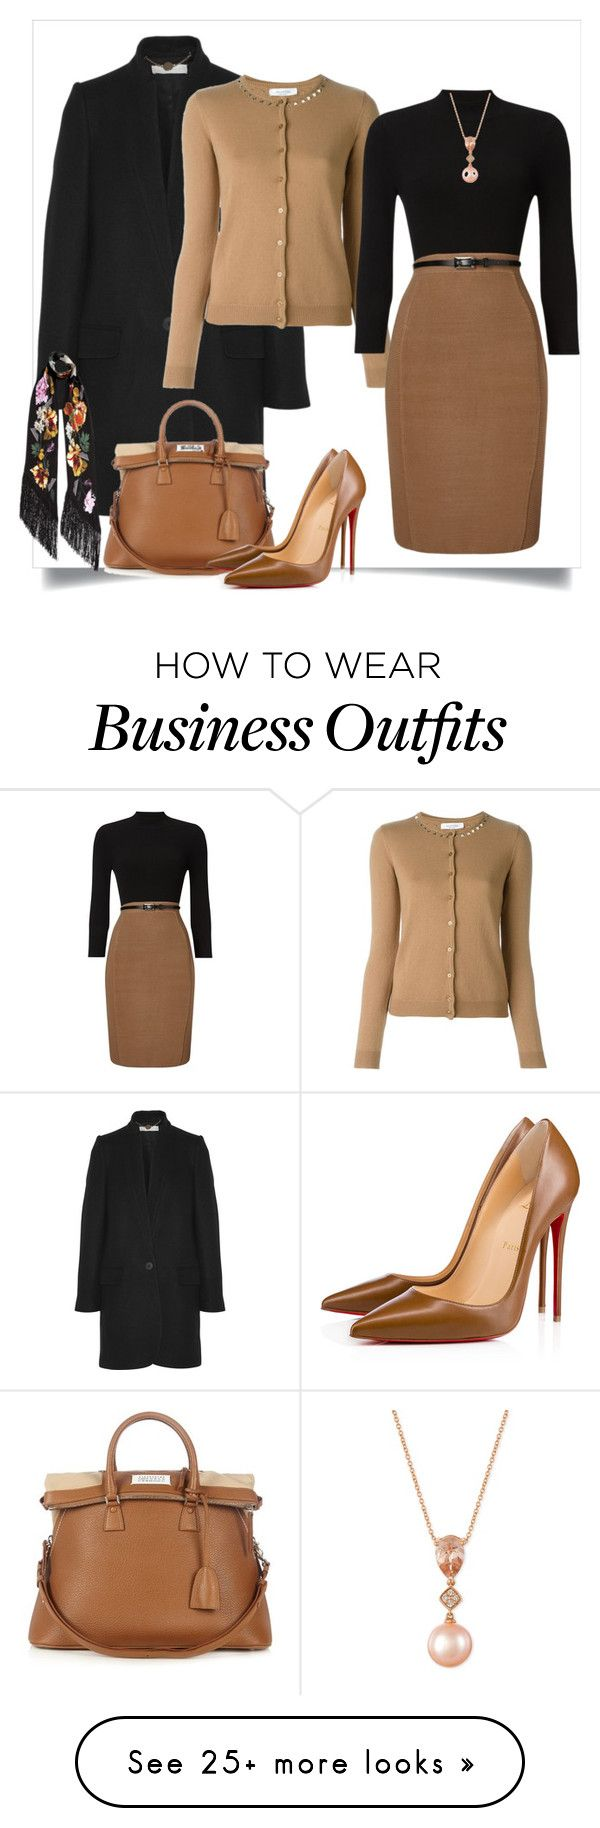 """""""Work Wear"""" by danewhite on Polyvore featuring STELLA McCARTNEY, Valentino, Phase Eight, Maison Margiela, Christian Louboutin, Rockins and LE VIAN"""